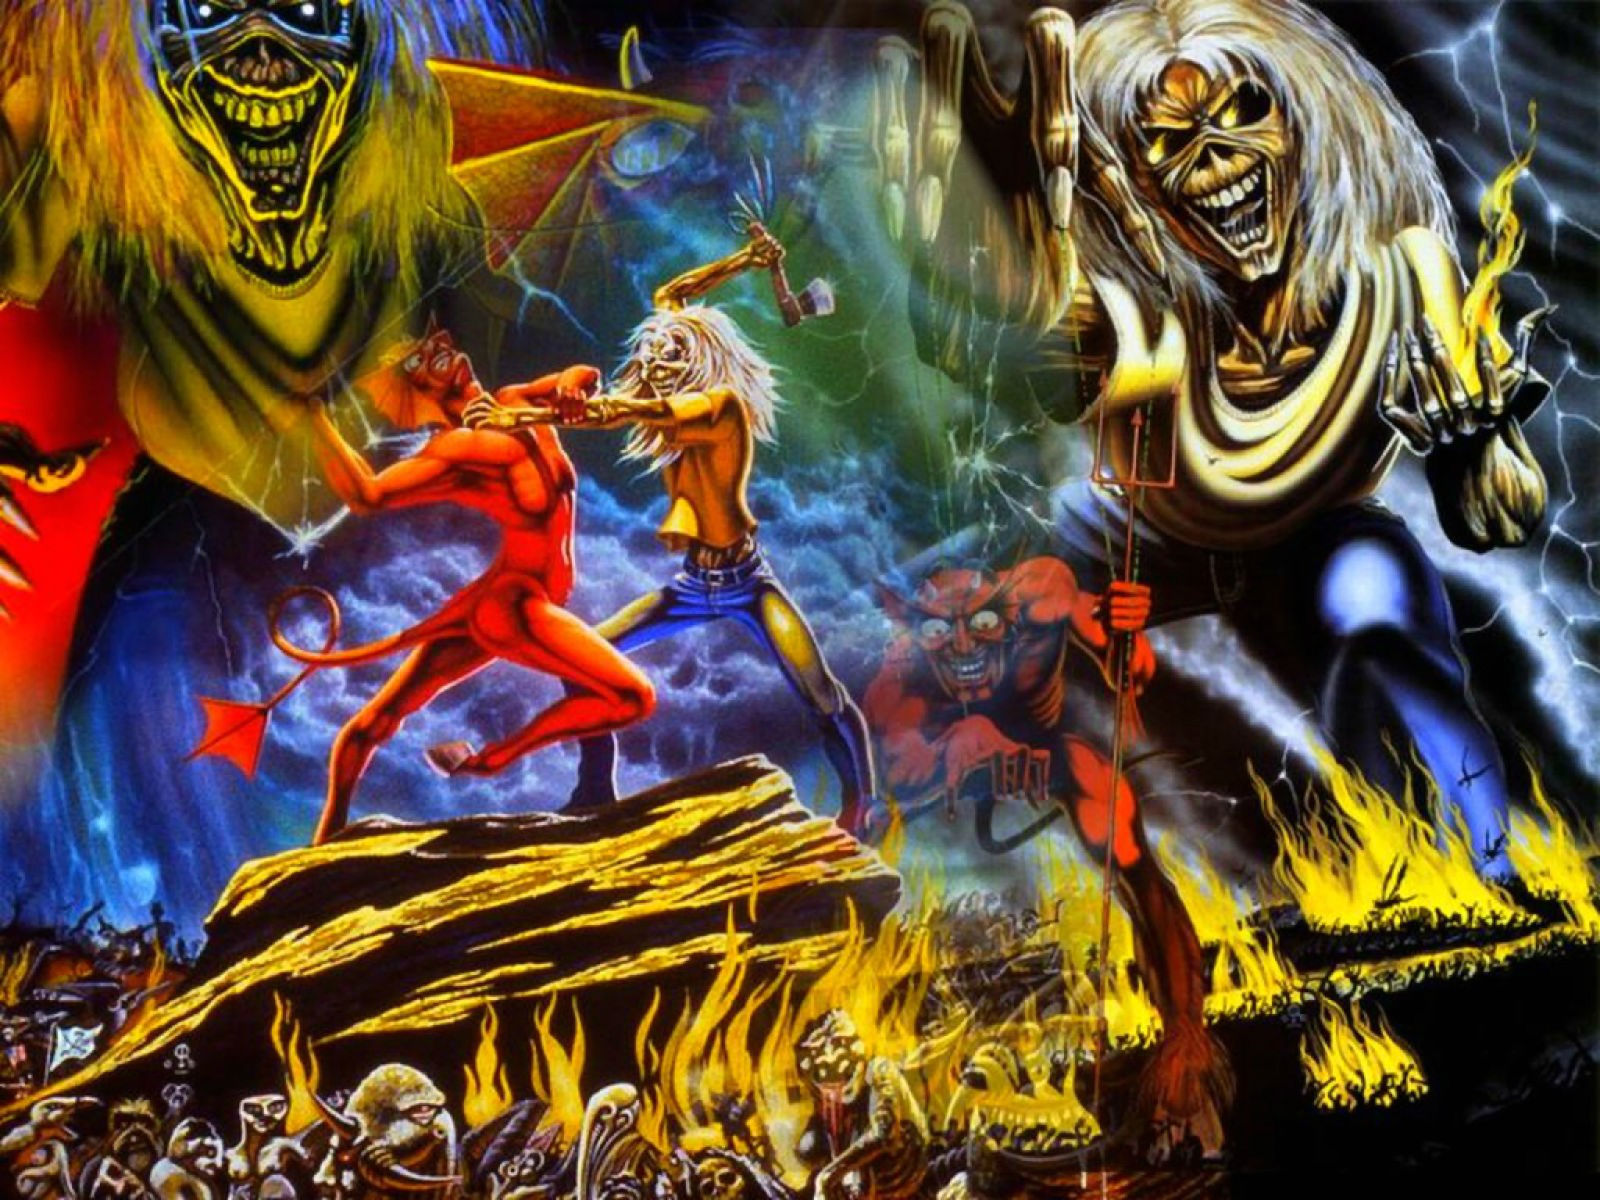 iron maiden wallpapers covers - photo #18